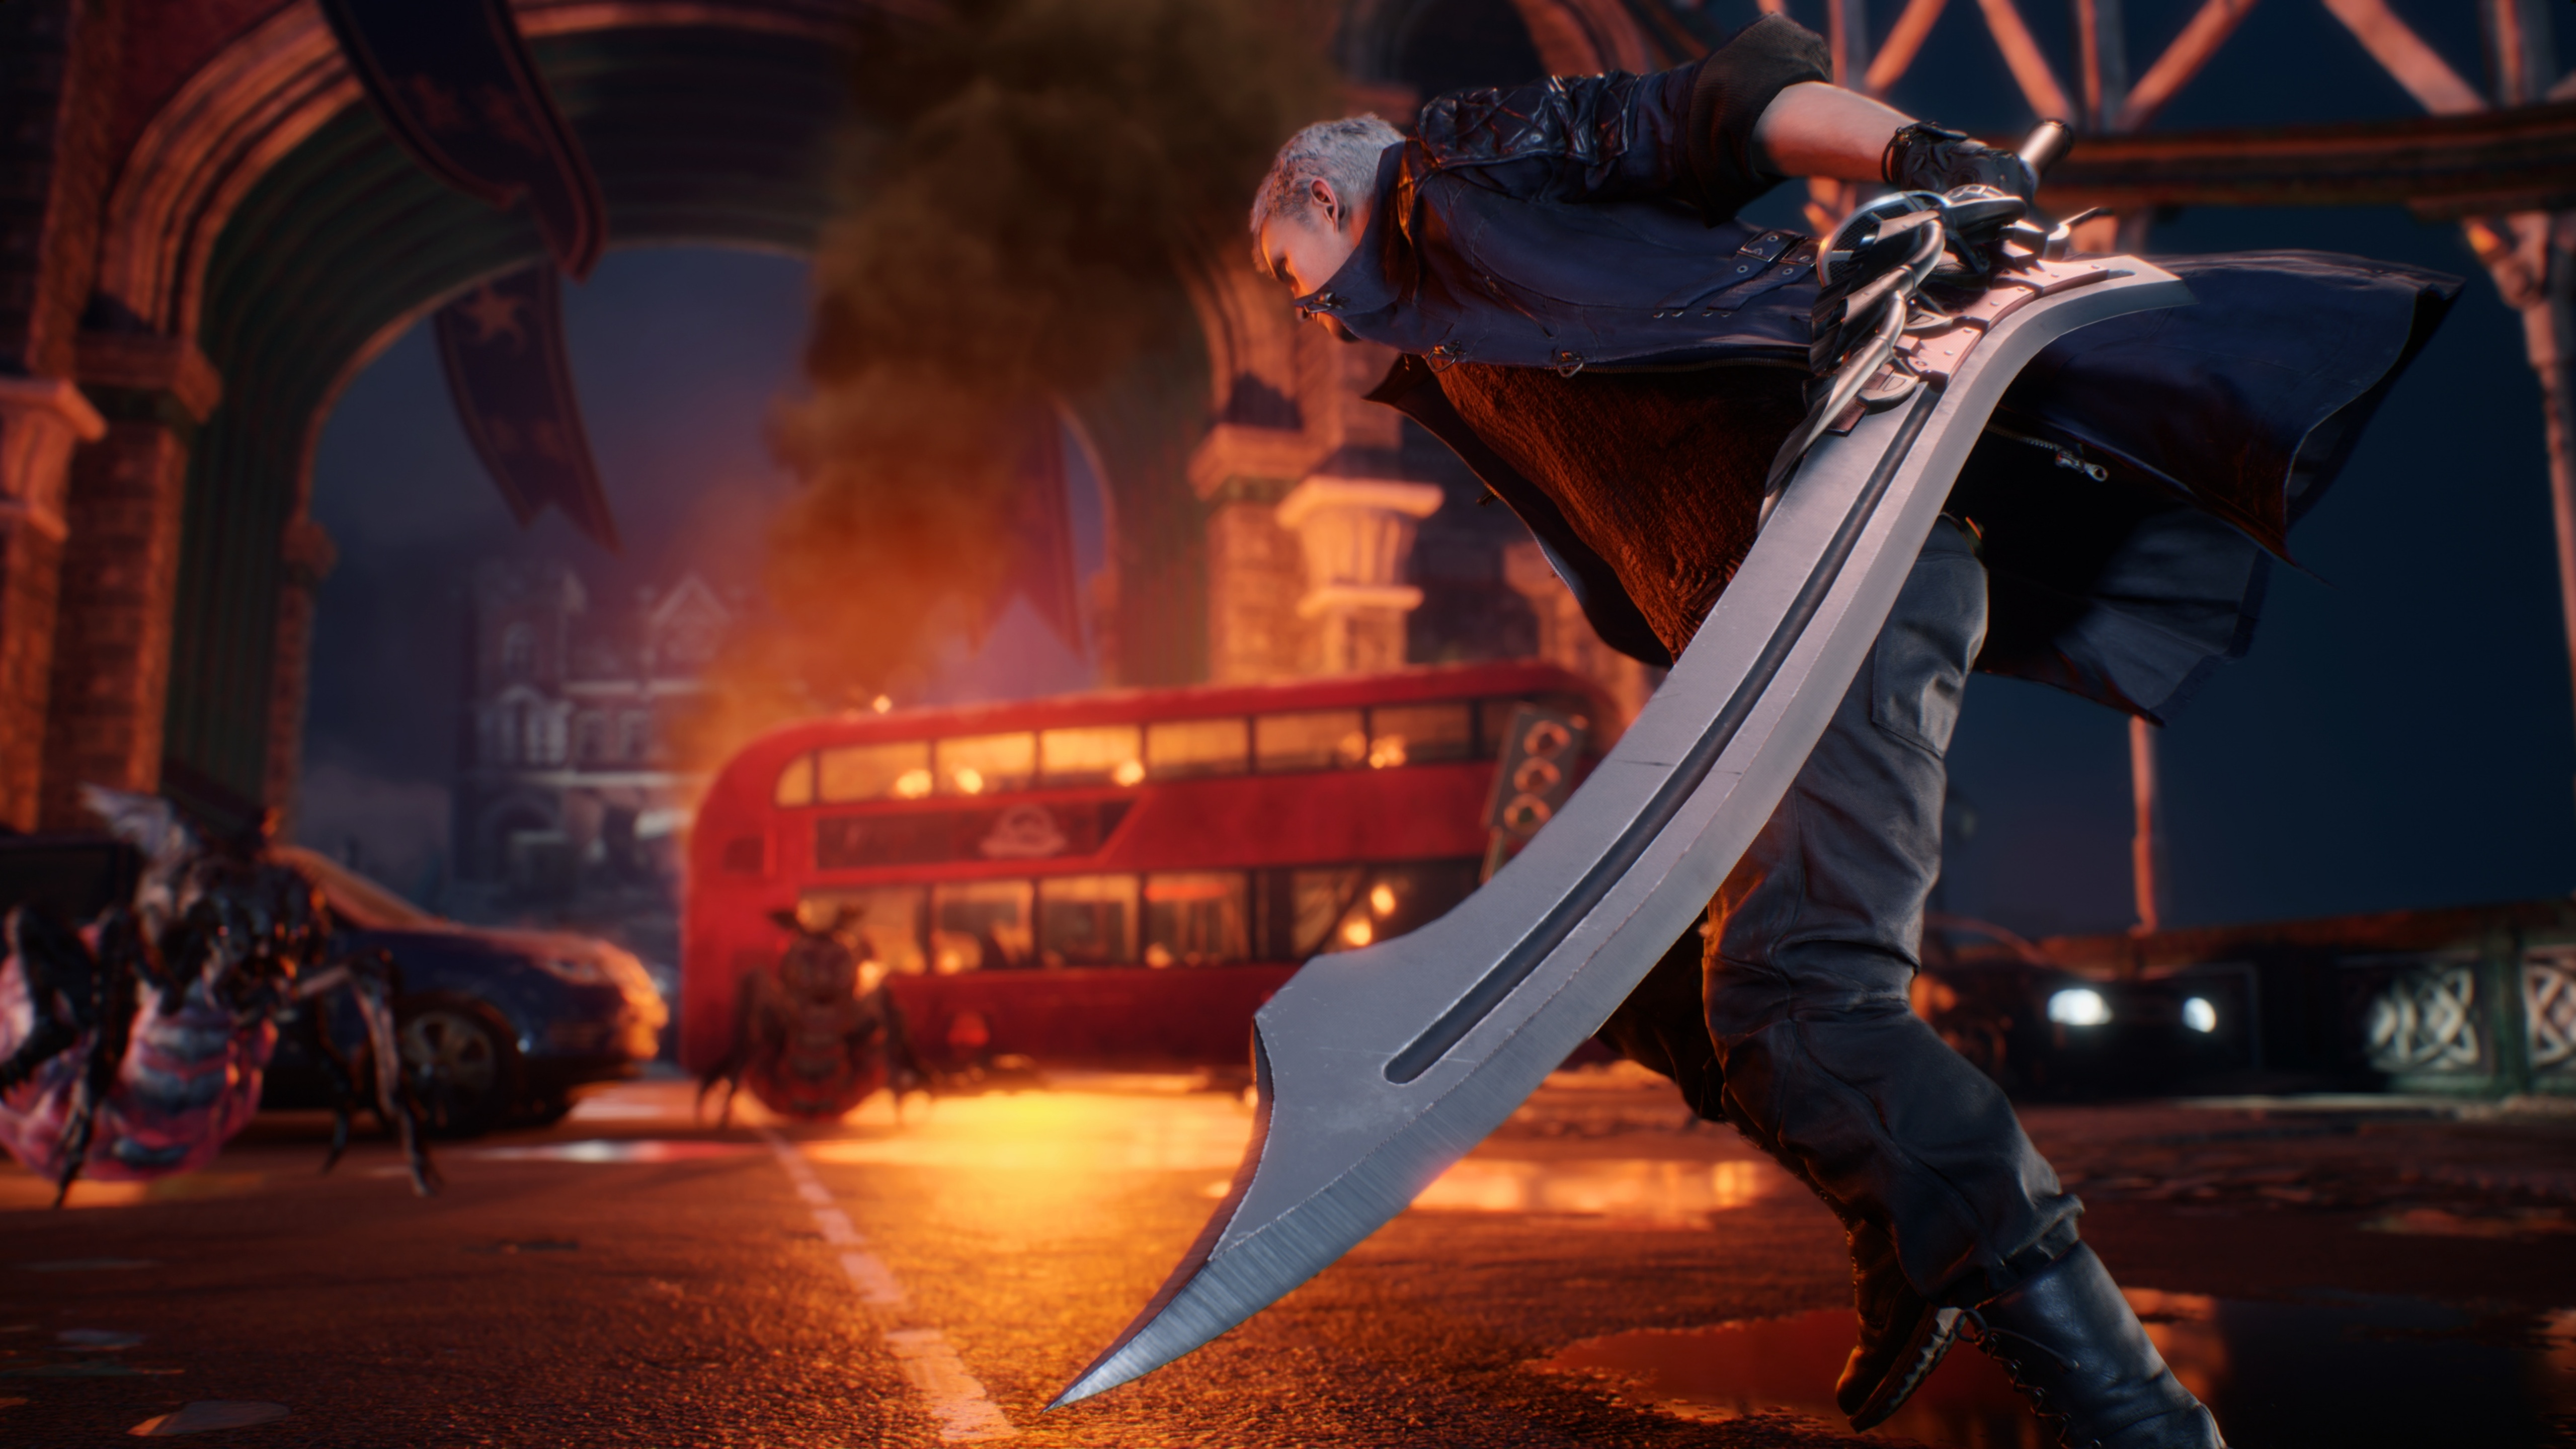 Top 12 Devil May Cry 5 Wallpapers In 4k And Full Hd